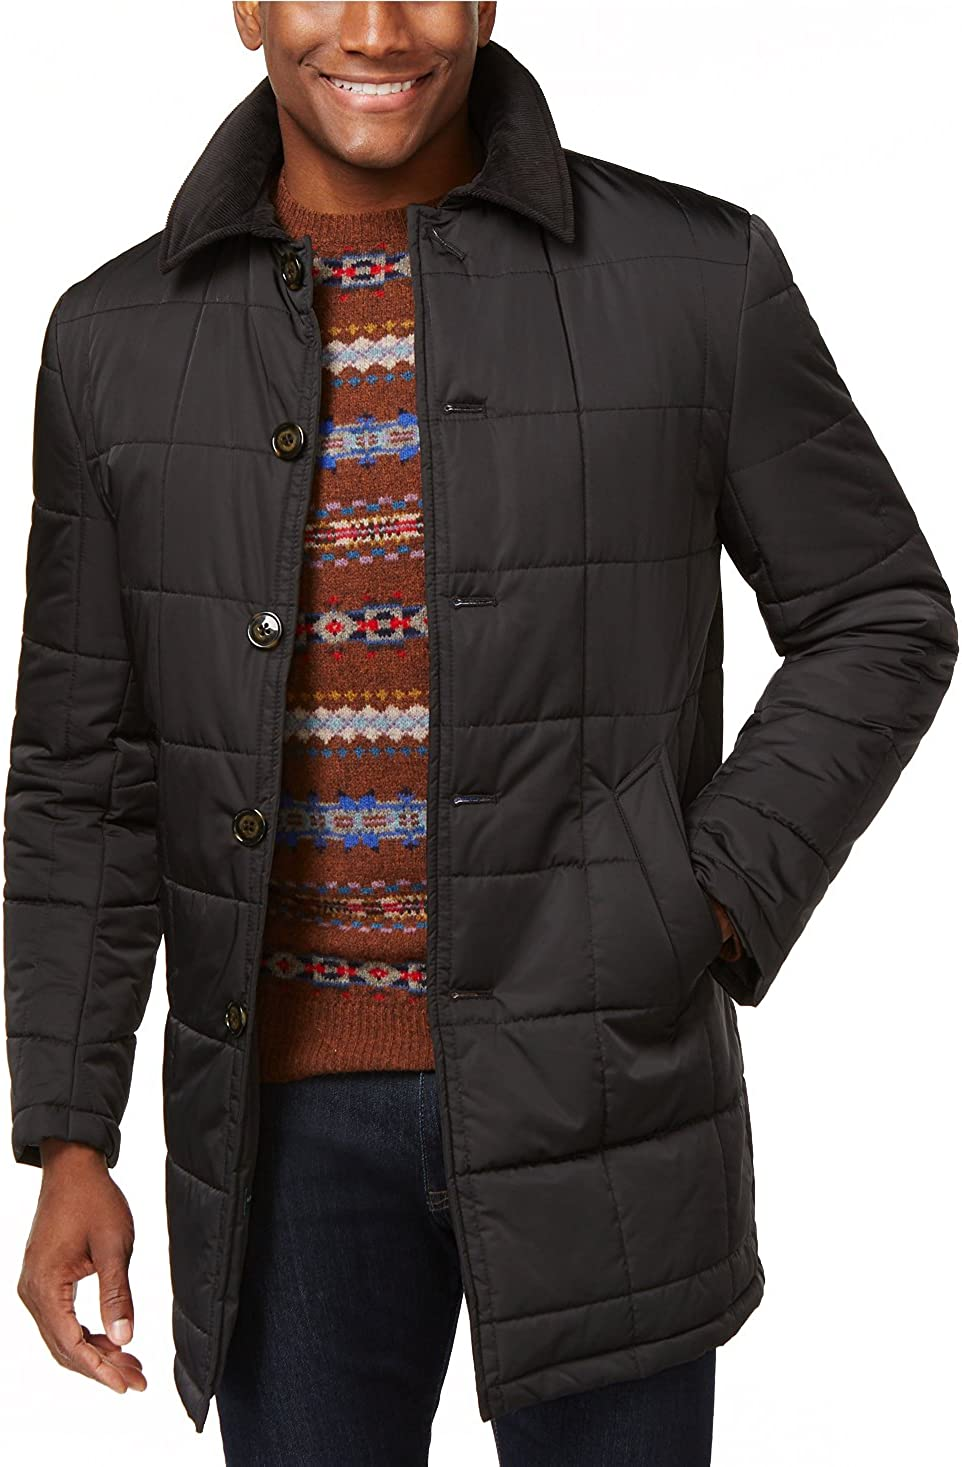 Ralph Lauren Men's Classic-Fit Quilted Jacket Single Breasted Solid Raincoat - Colors